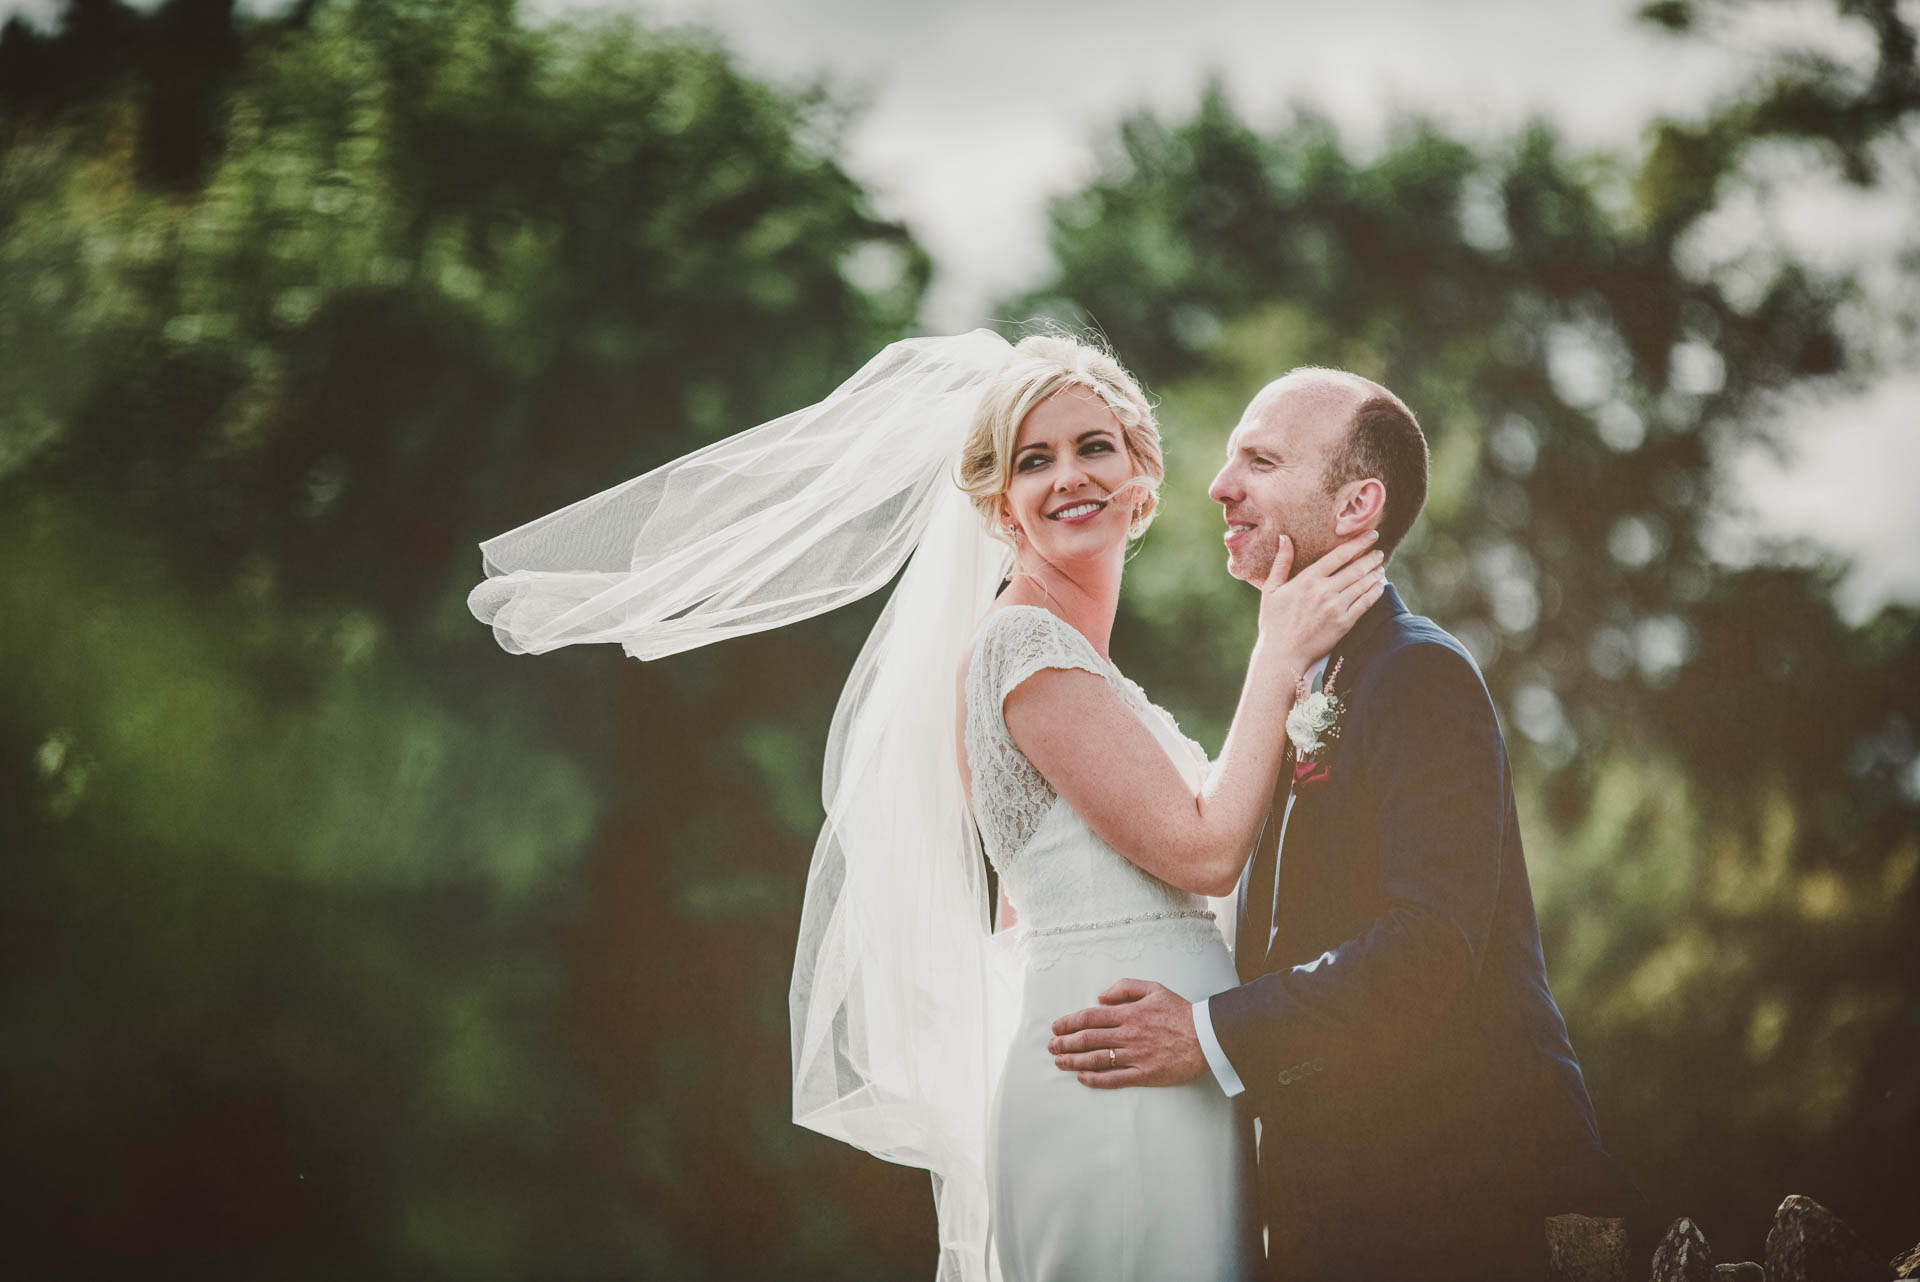 Marie&Patrick Wedding Day – Killarney 26.08.2016 (reportage of the wedding as second photographer)